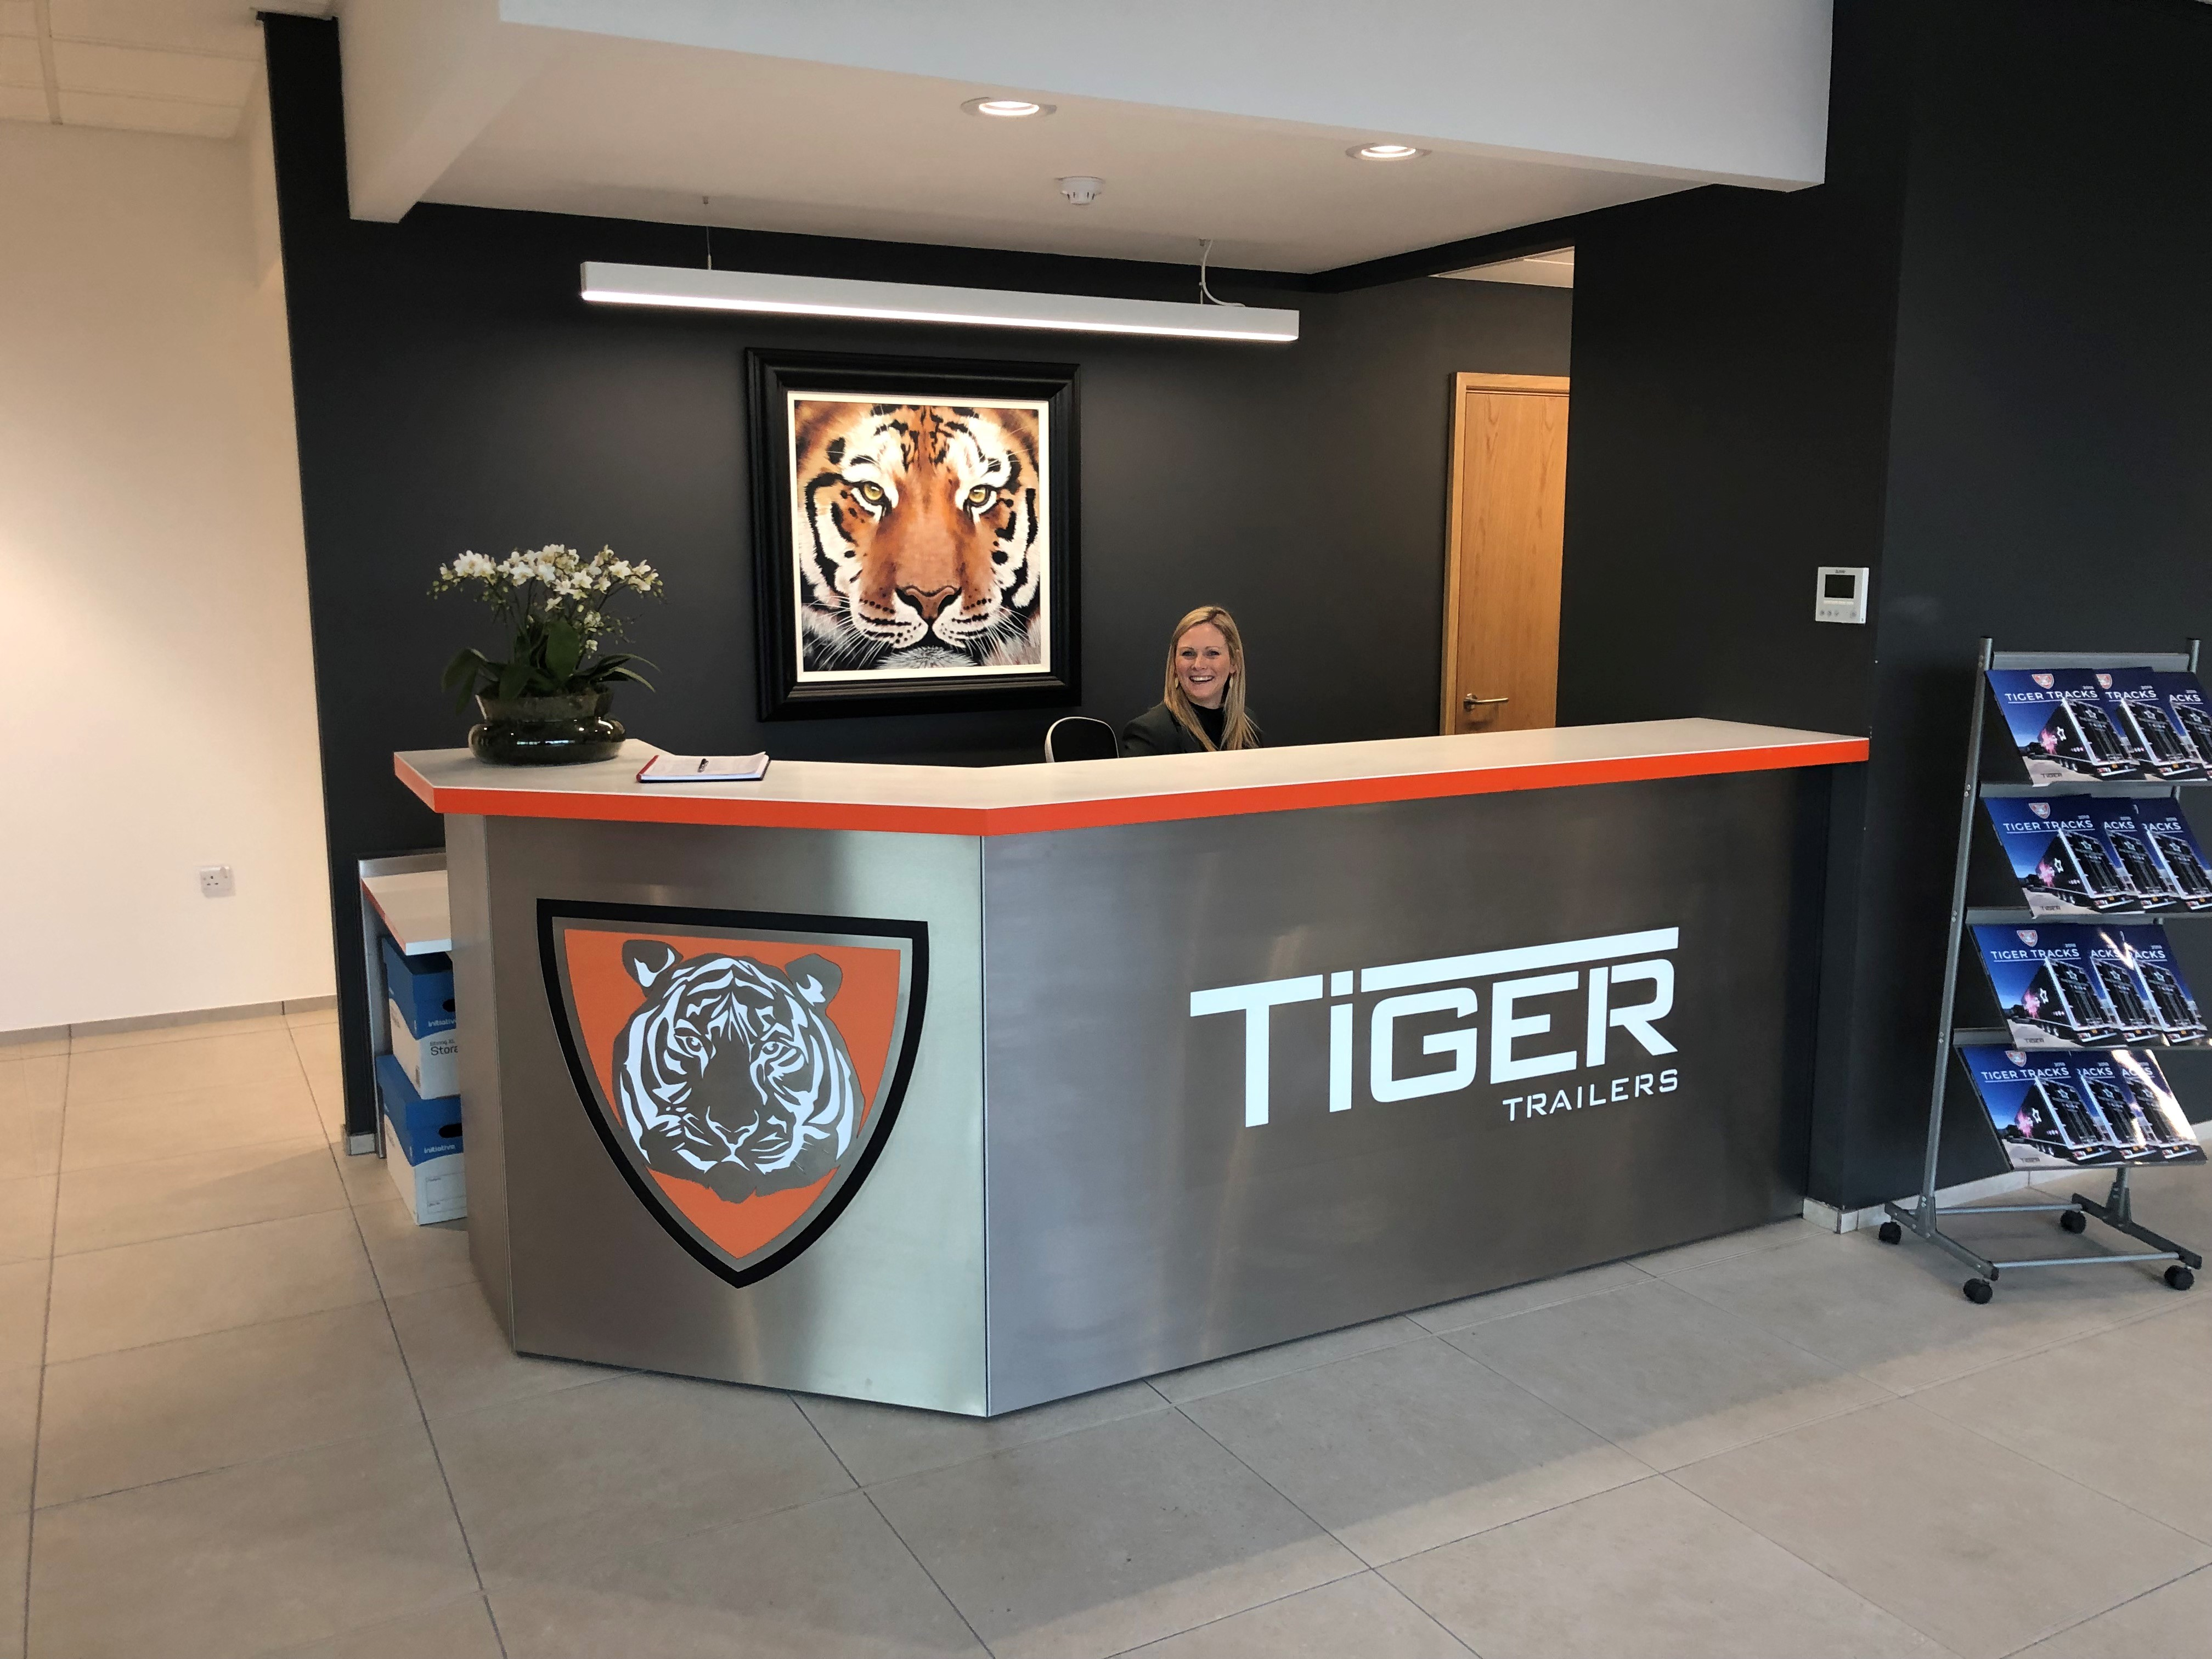 Project complete at Tiger Trailers